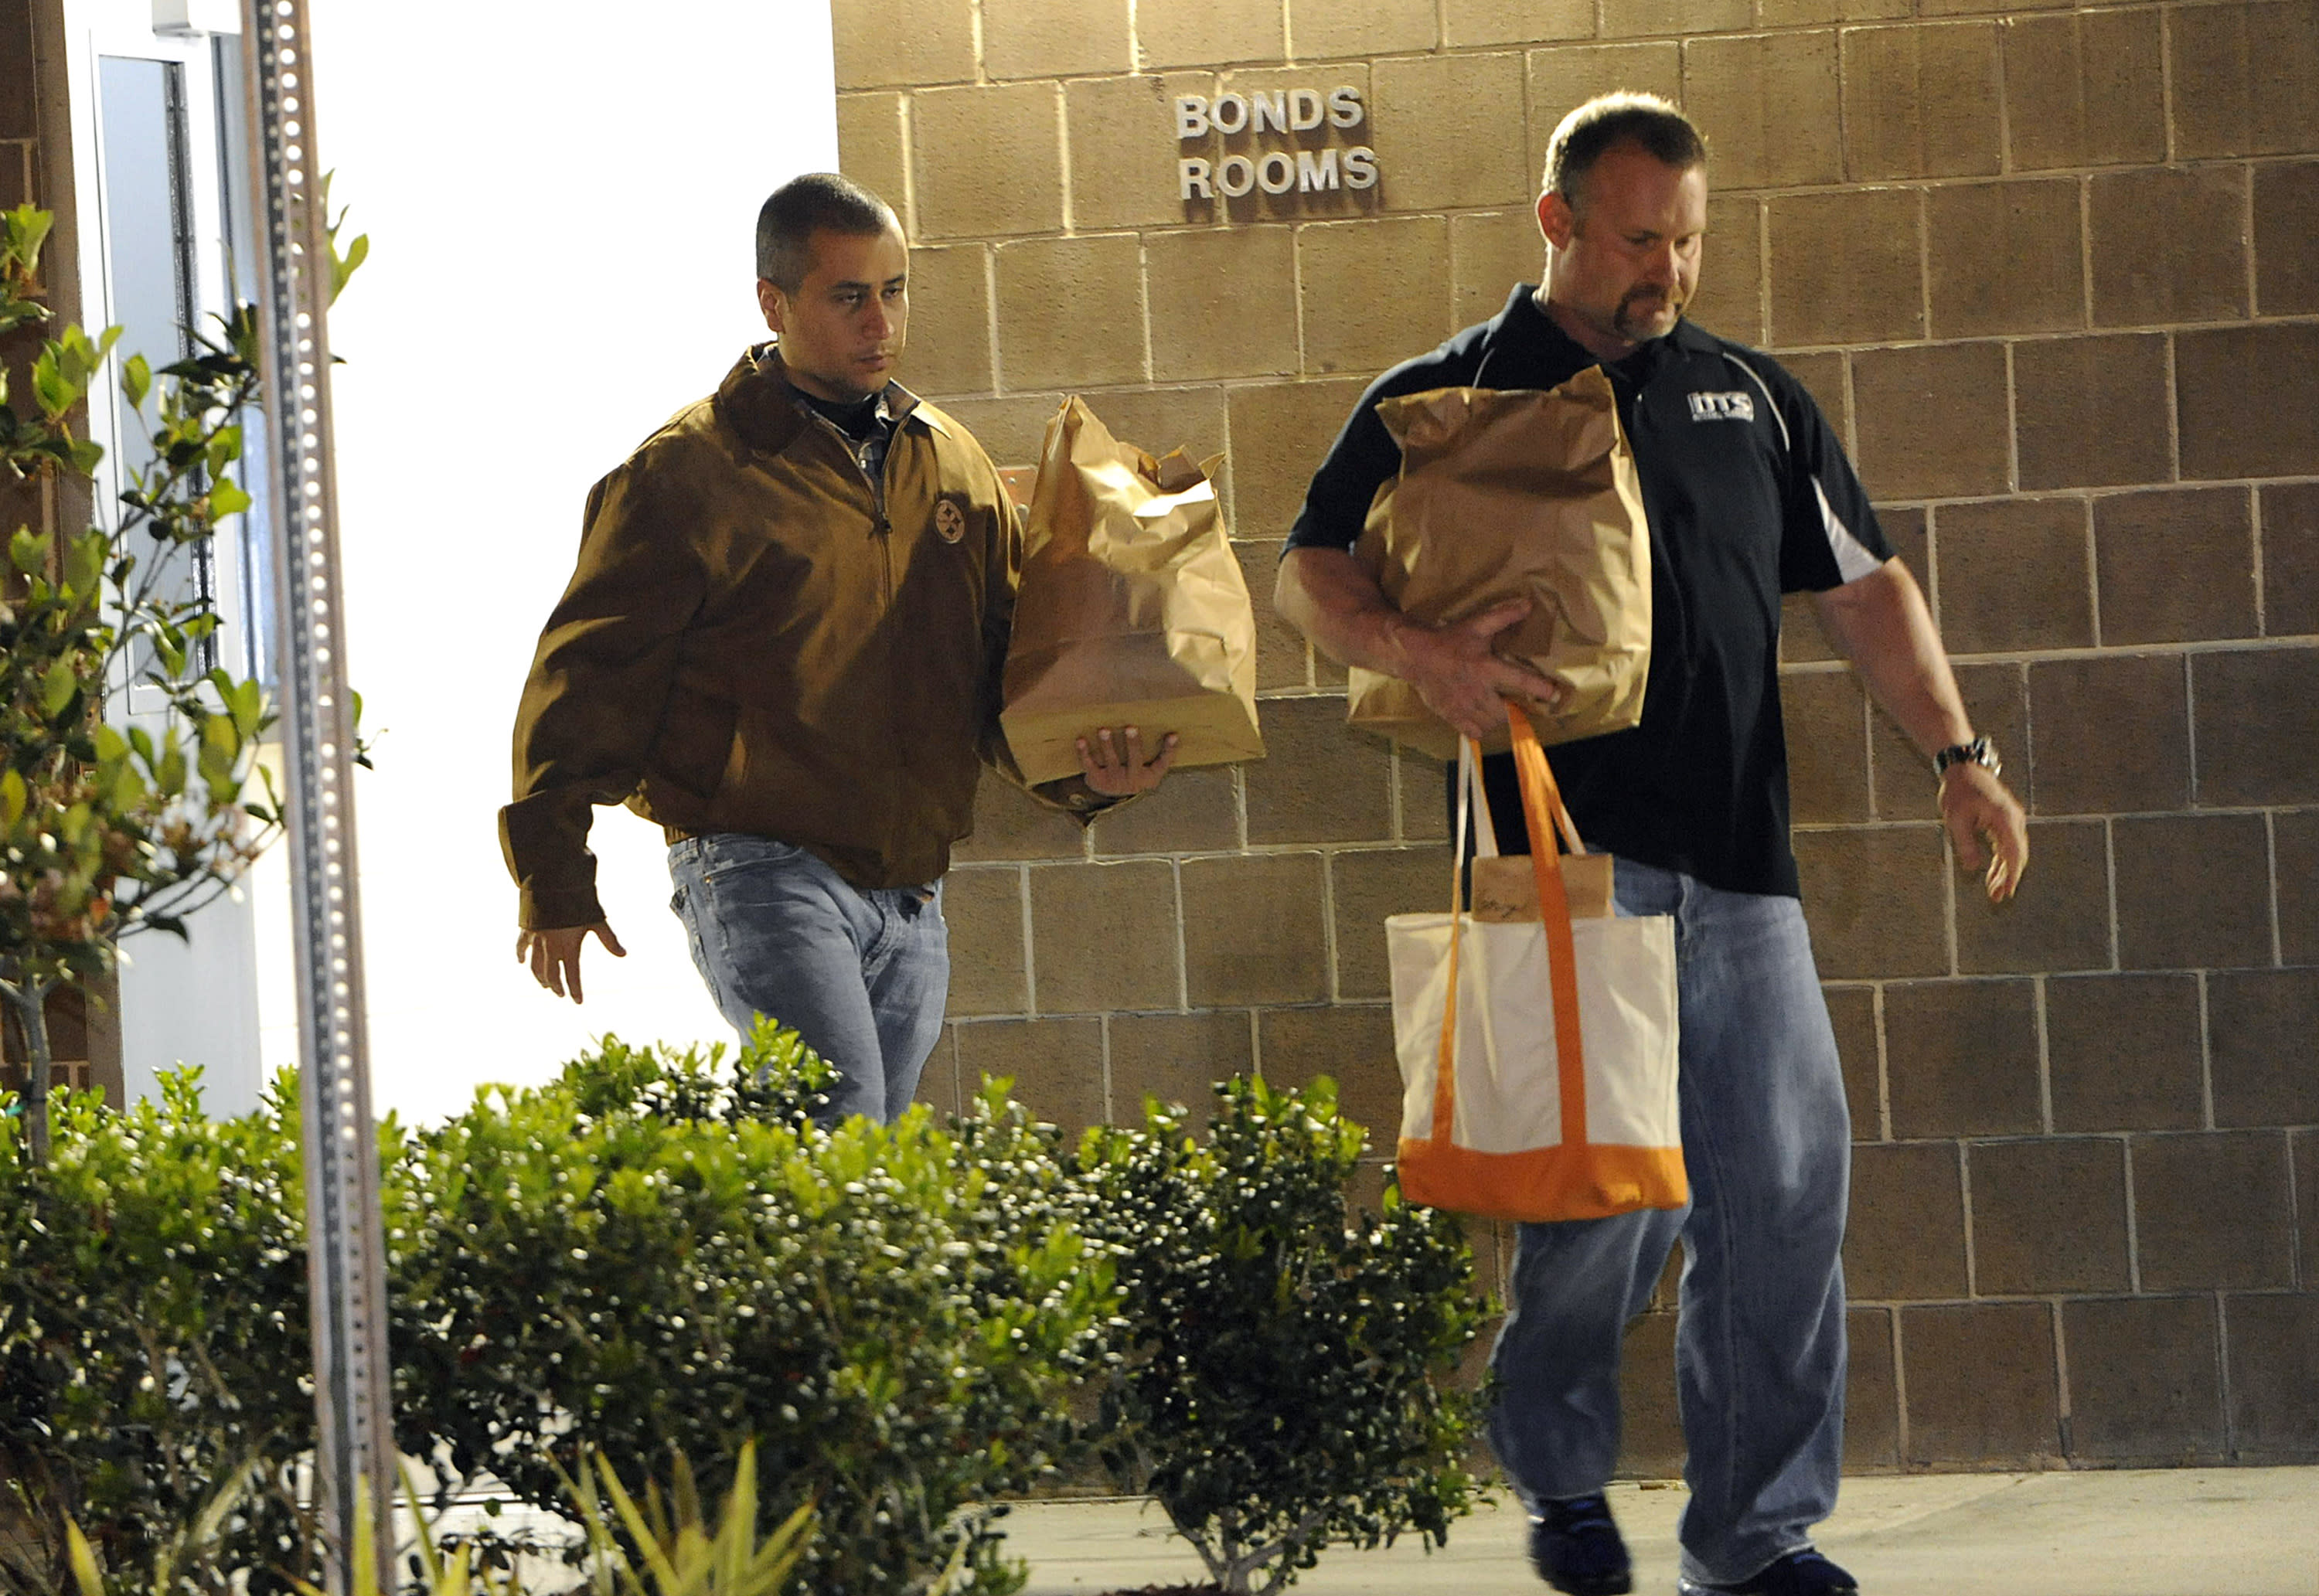 ADDS THAT THE MAN ACCOMPANYING ZIMMERMAN IS A BONDSMAN - George Zimmerman, left, walks out of the intake building at the John E. Polk Correctional Facility with a bondsman on Sunday, April 22, 2012, in Sanford, Fla. Zimmerman posted bail on a $150,000 bond on a second degree murder charge in the February shooting death of 17 year-old Trayvon Martin In Sanford, Fla. (AP Photo/Brian Blanco)